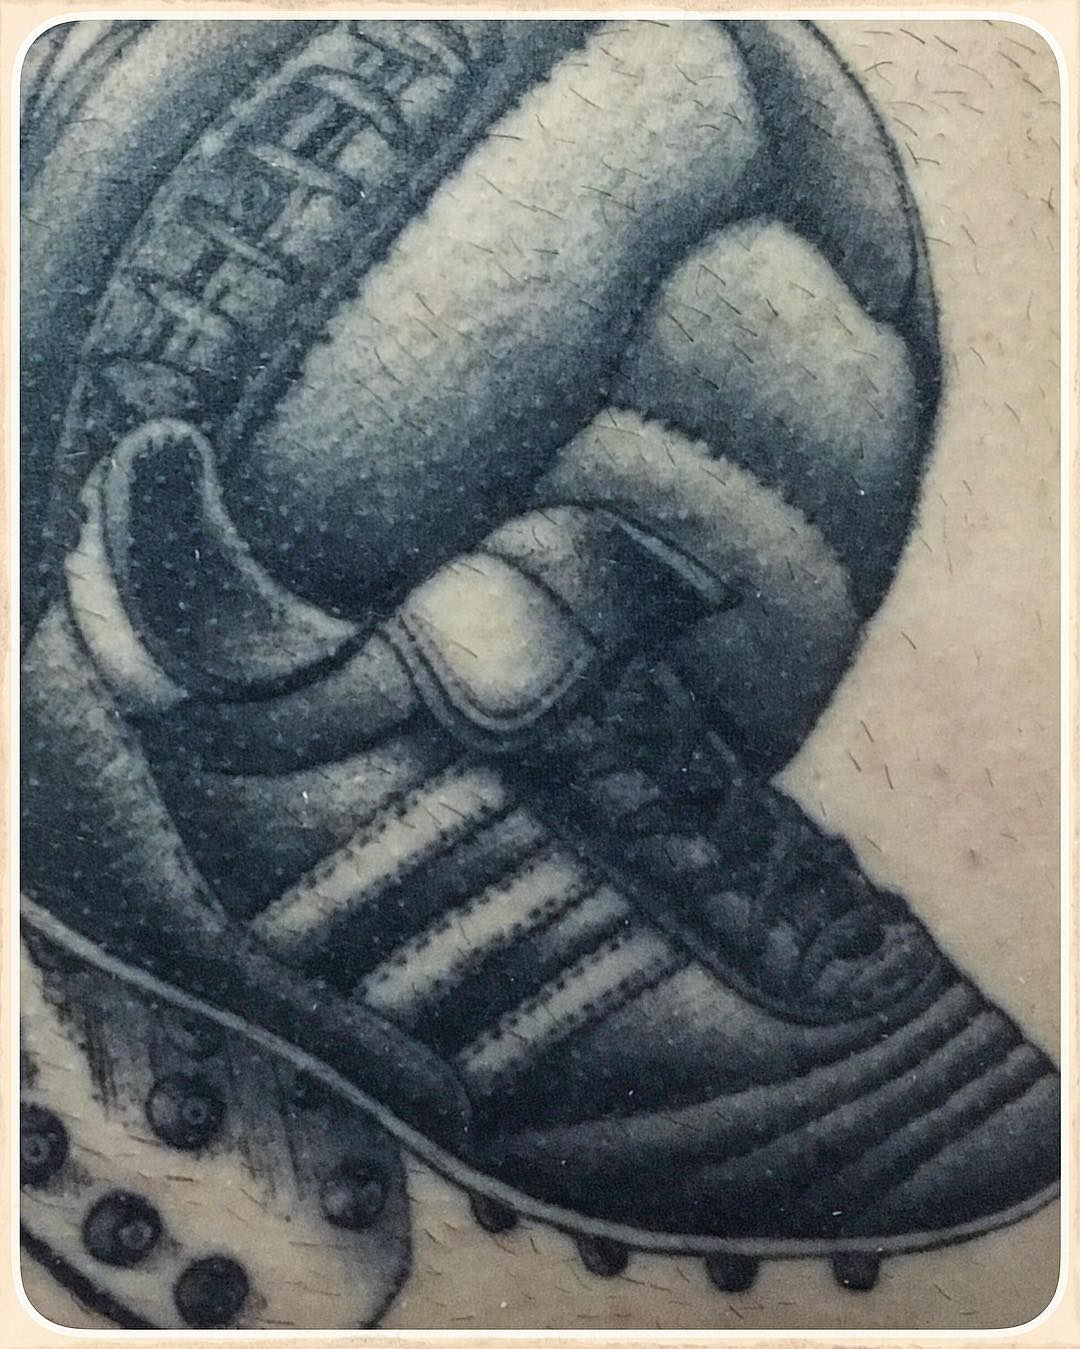 a close up of the healed soccer piece, i ve done 1 year ago,  thanks alex for vi